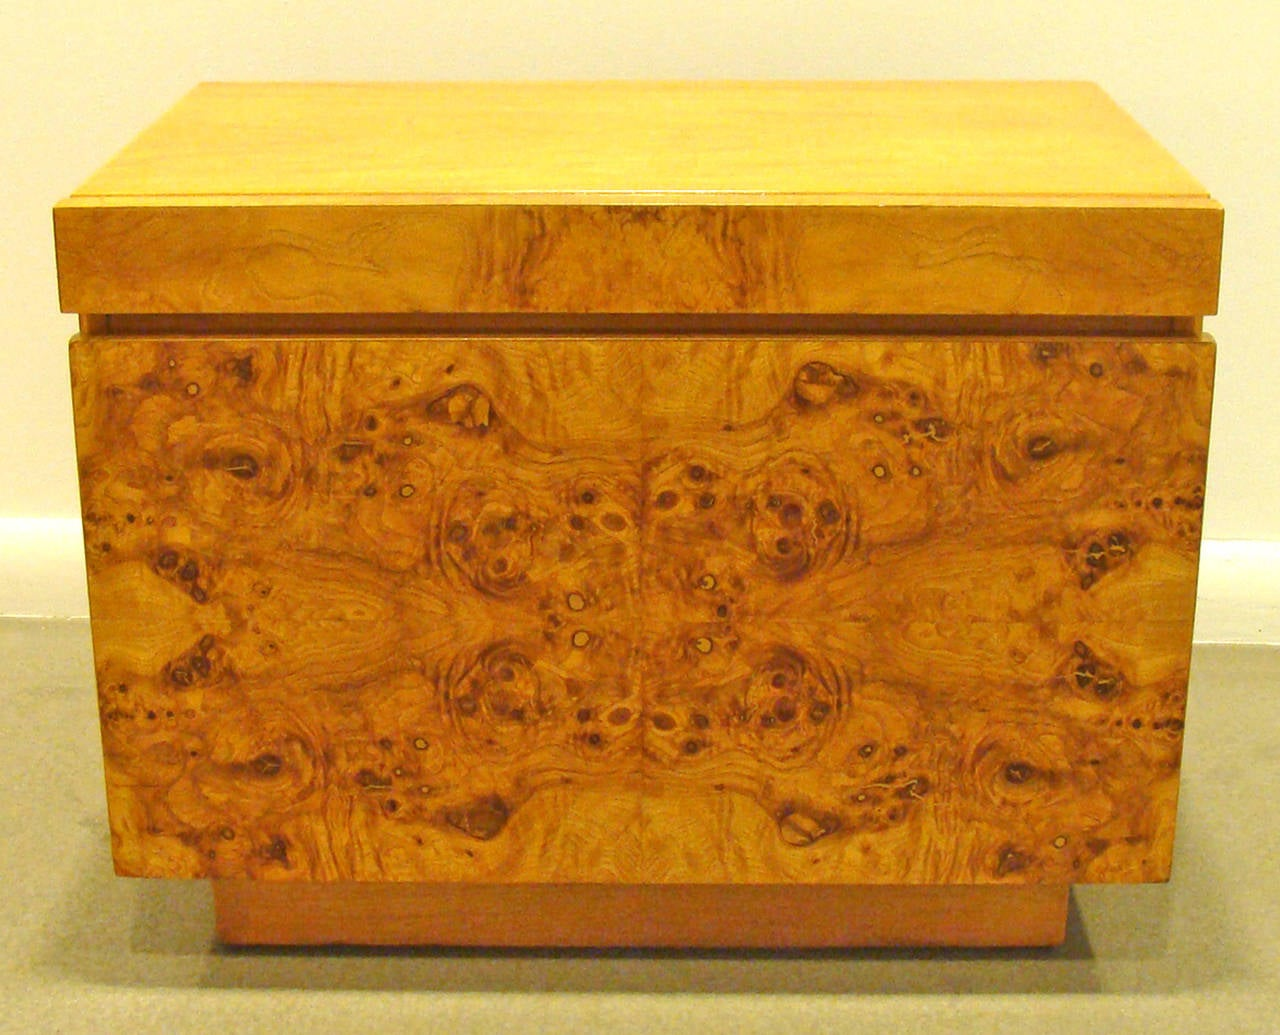 Pair Of Lane Burl Wood End Tables Or Nightstands At 1stdibs